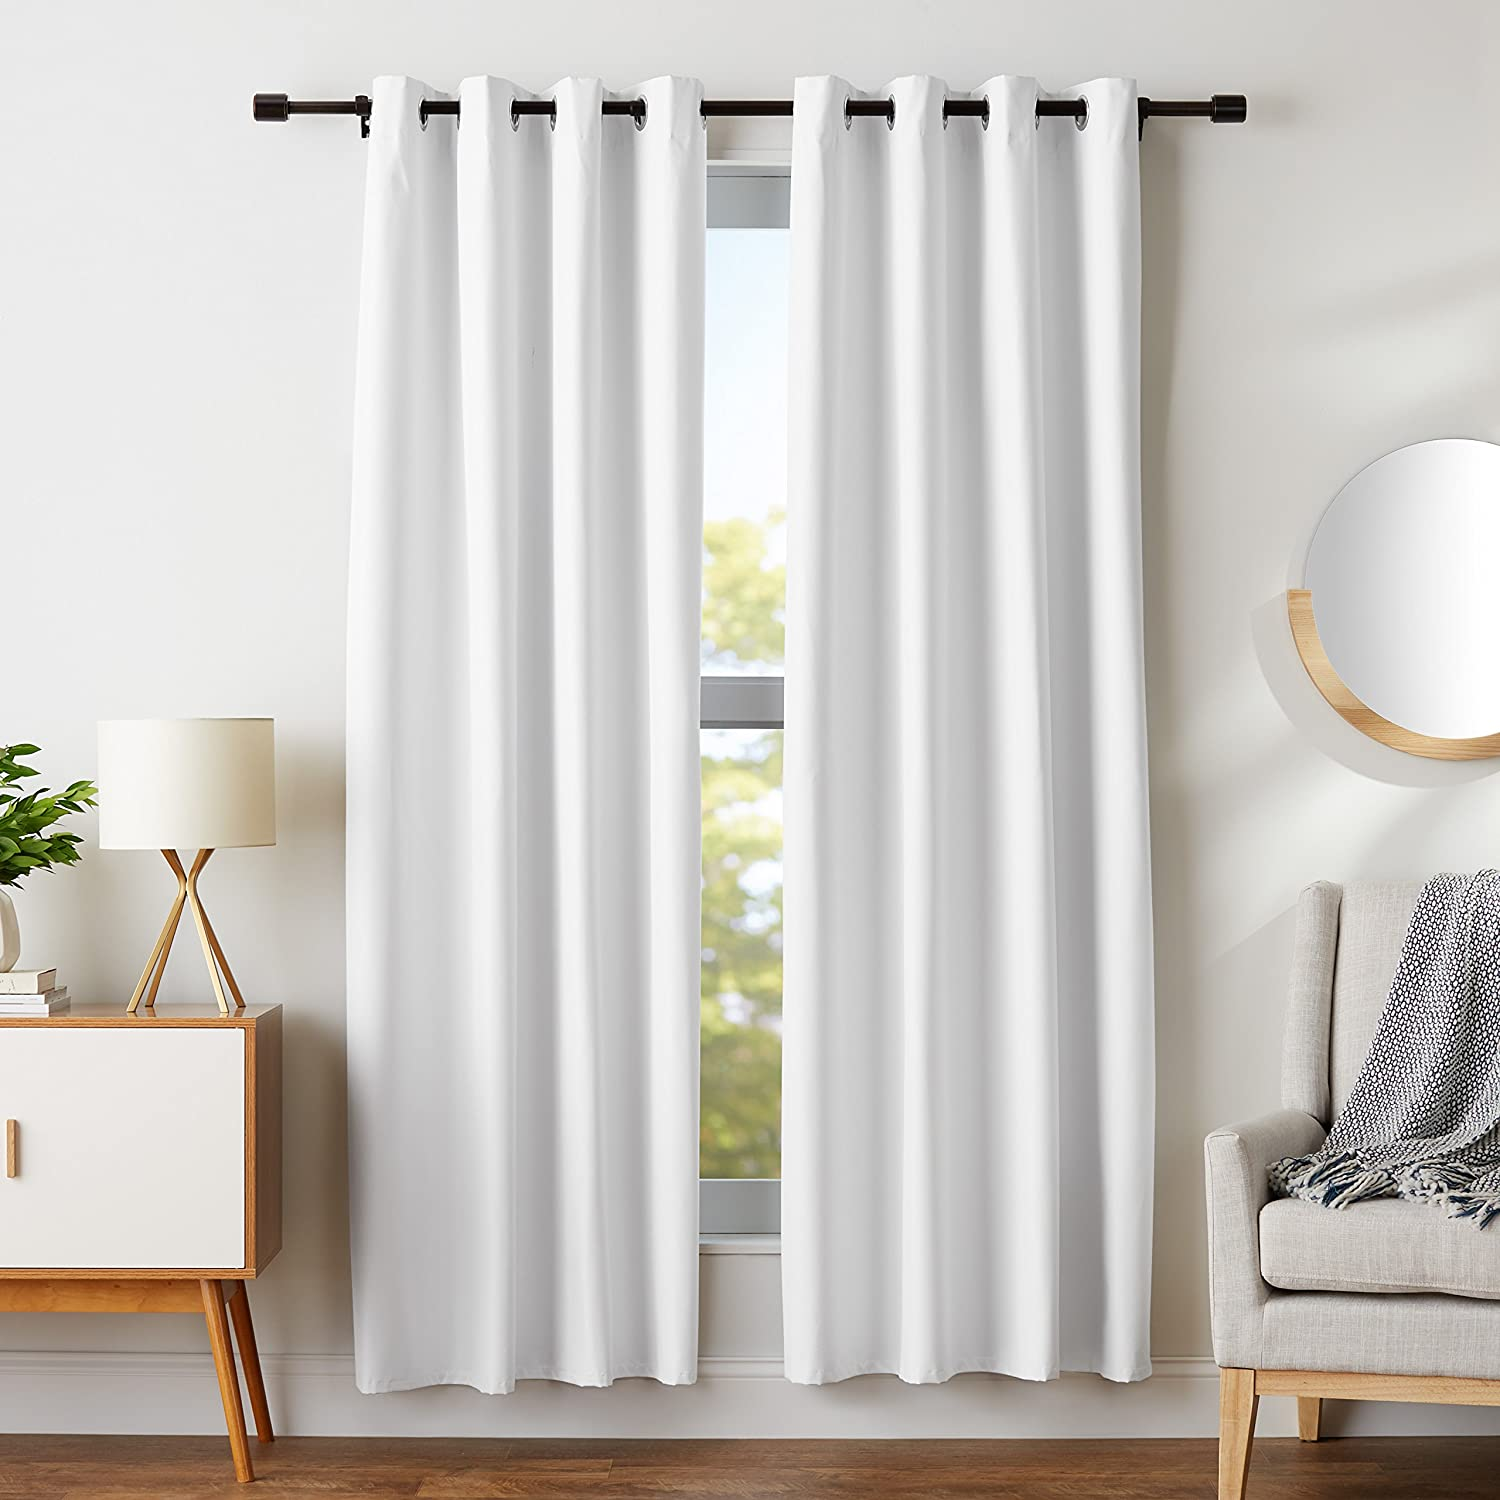 "AmazonBasics Room Darkening Blackout Window Curtains with Grommets Set, 42"" x 84"", White"